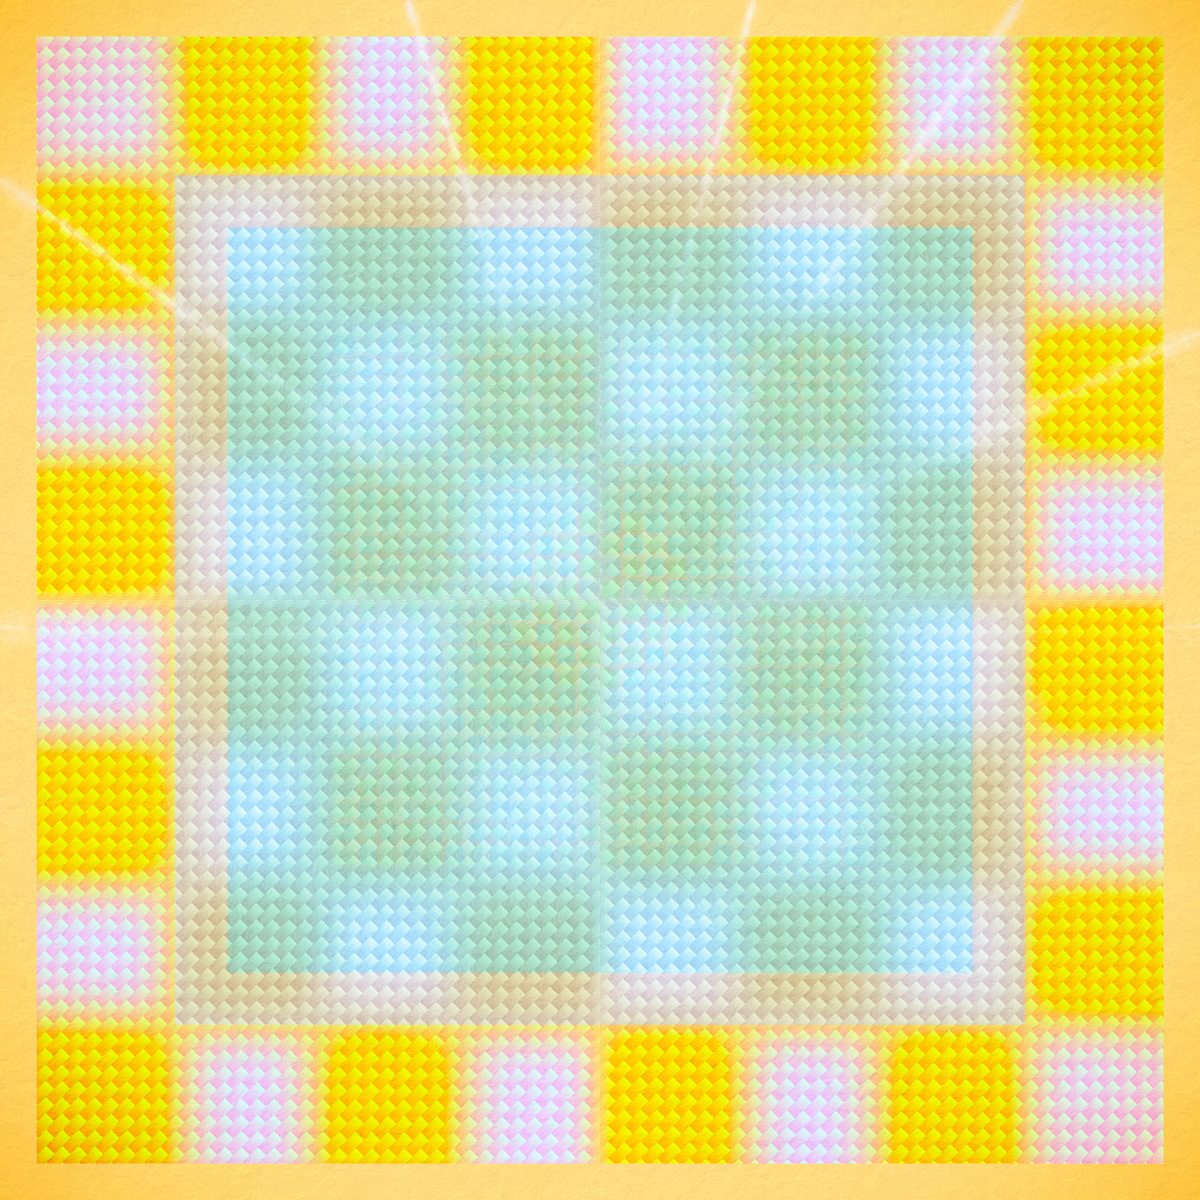 fft checkerboard with sunburst (1)